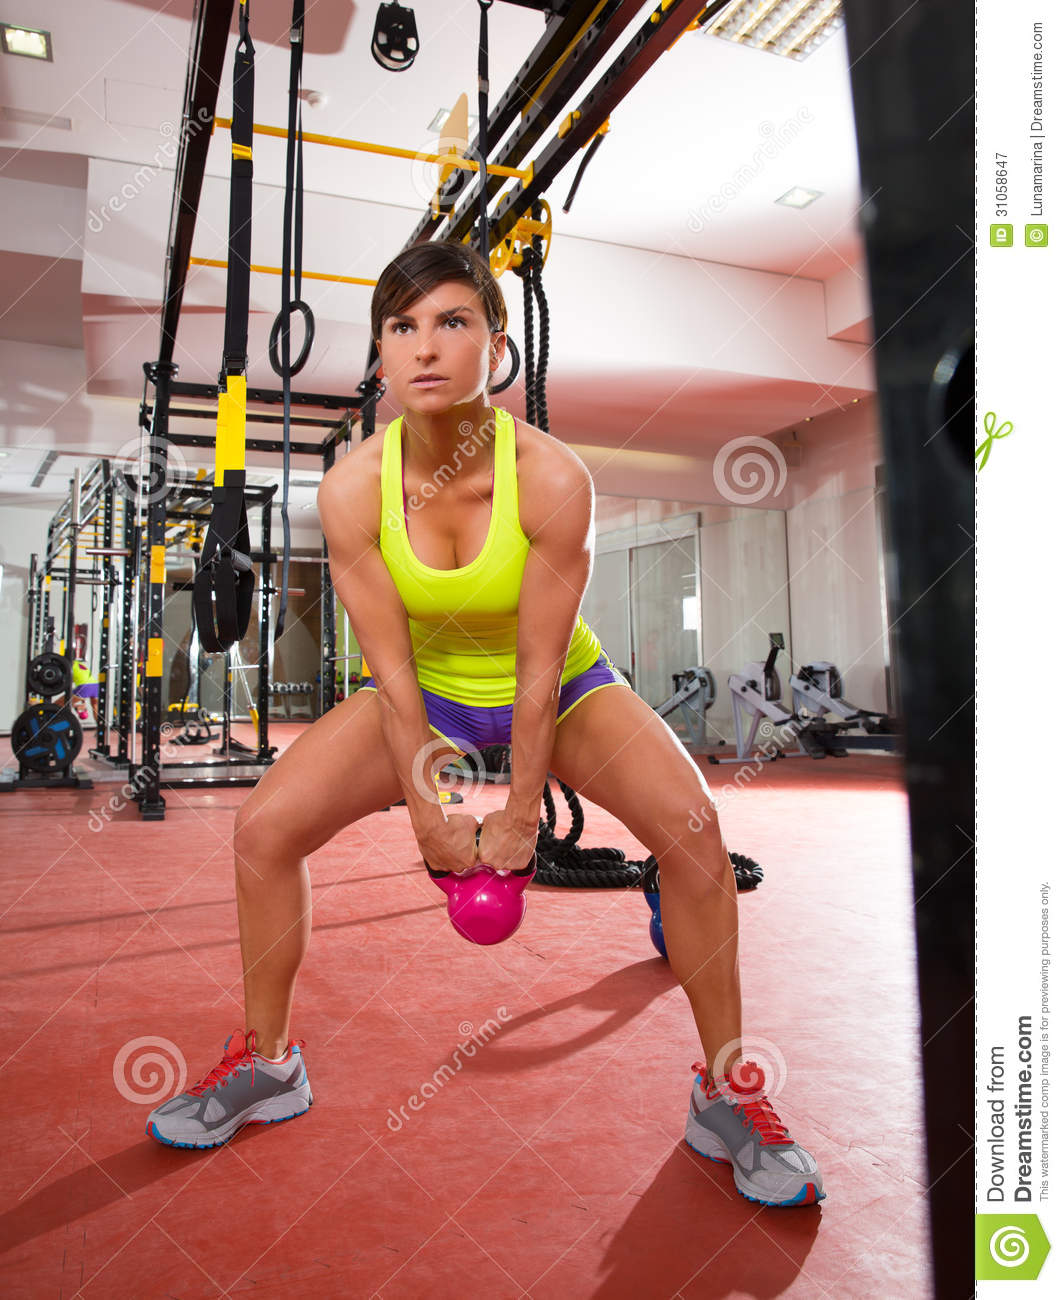 Workout Photography: Crossfit Fitness Kettlebells Swing Exercise Workout At Gym